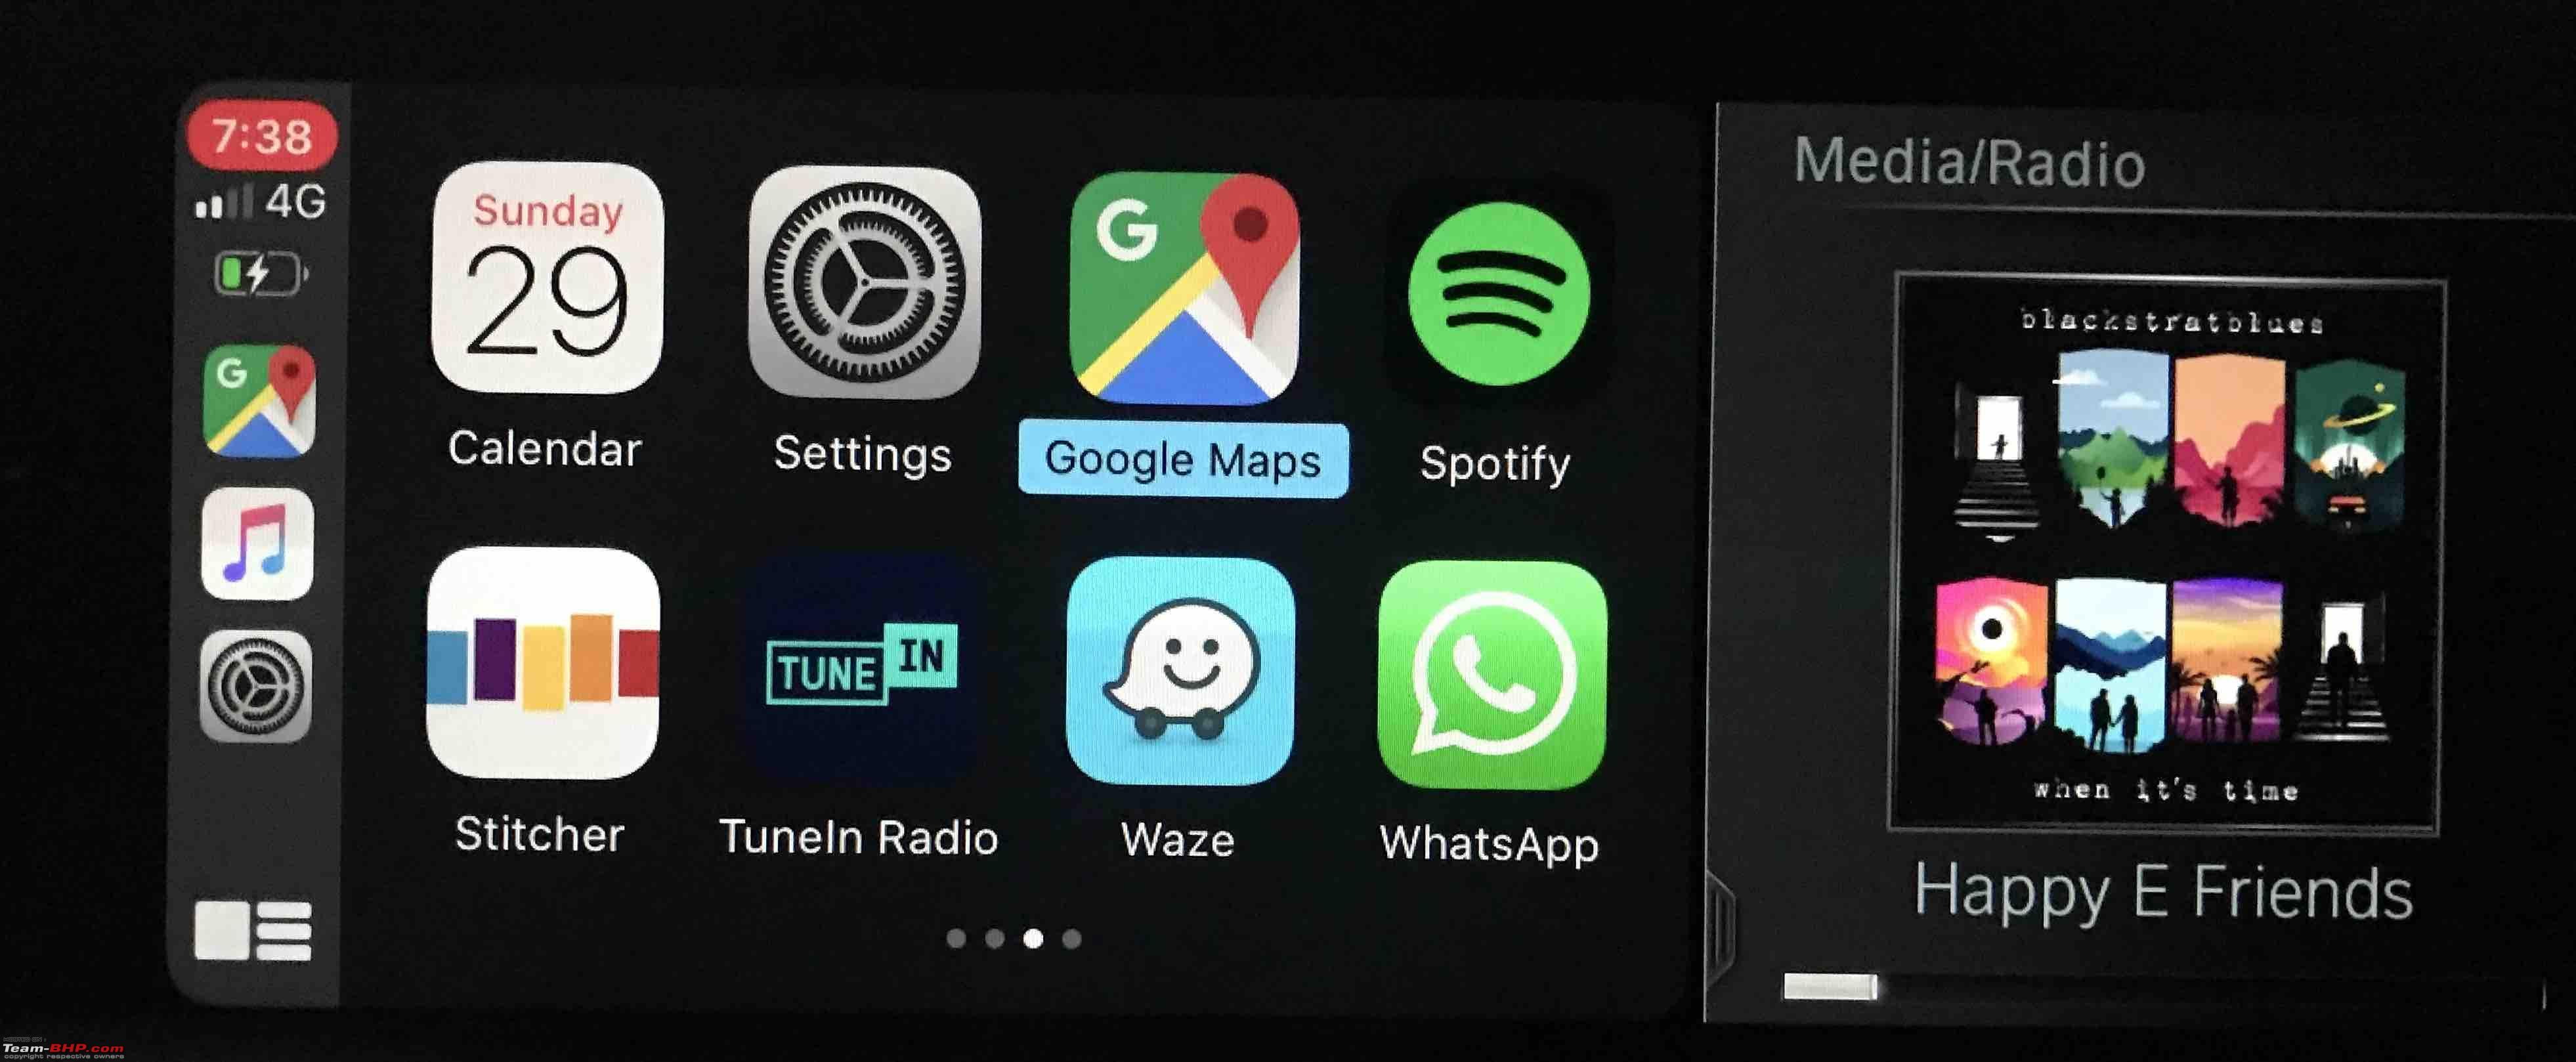 Enabled! Apple CarPlay in my BMW 5-Series (G30)  EDIT